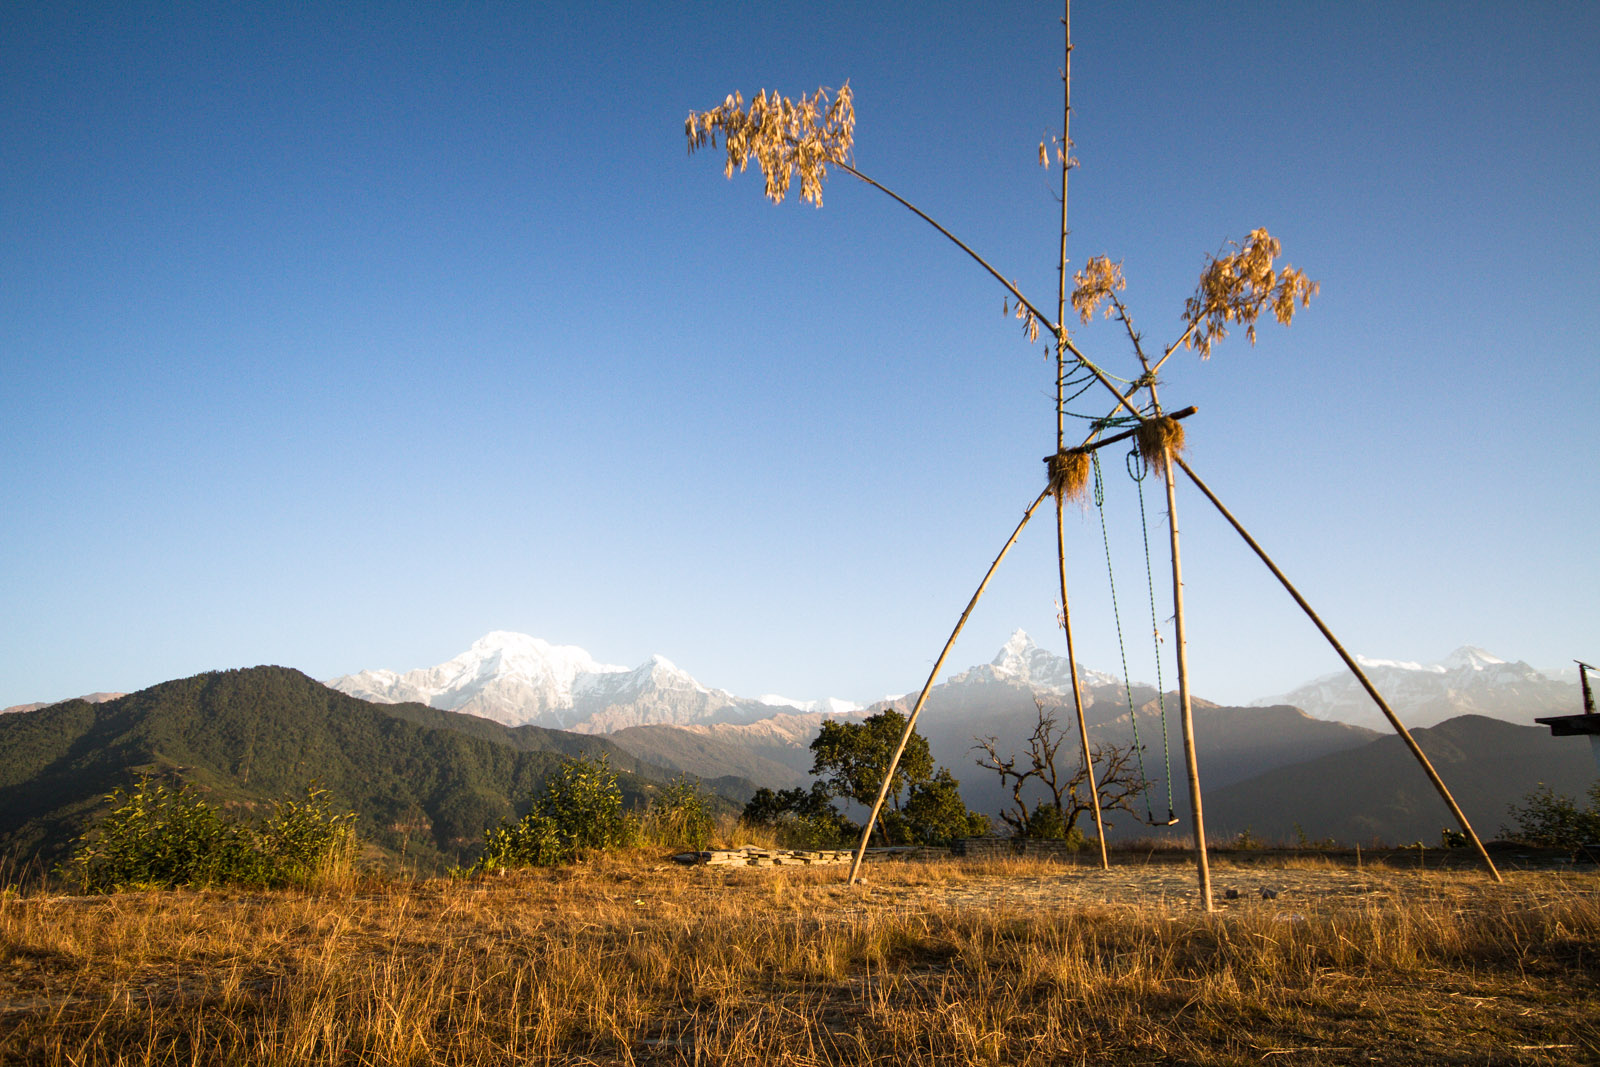 handmade bamboo swing in the mountains